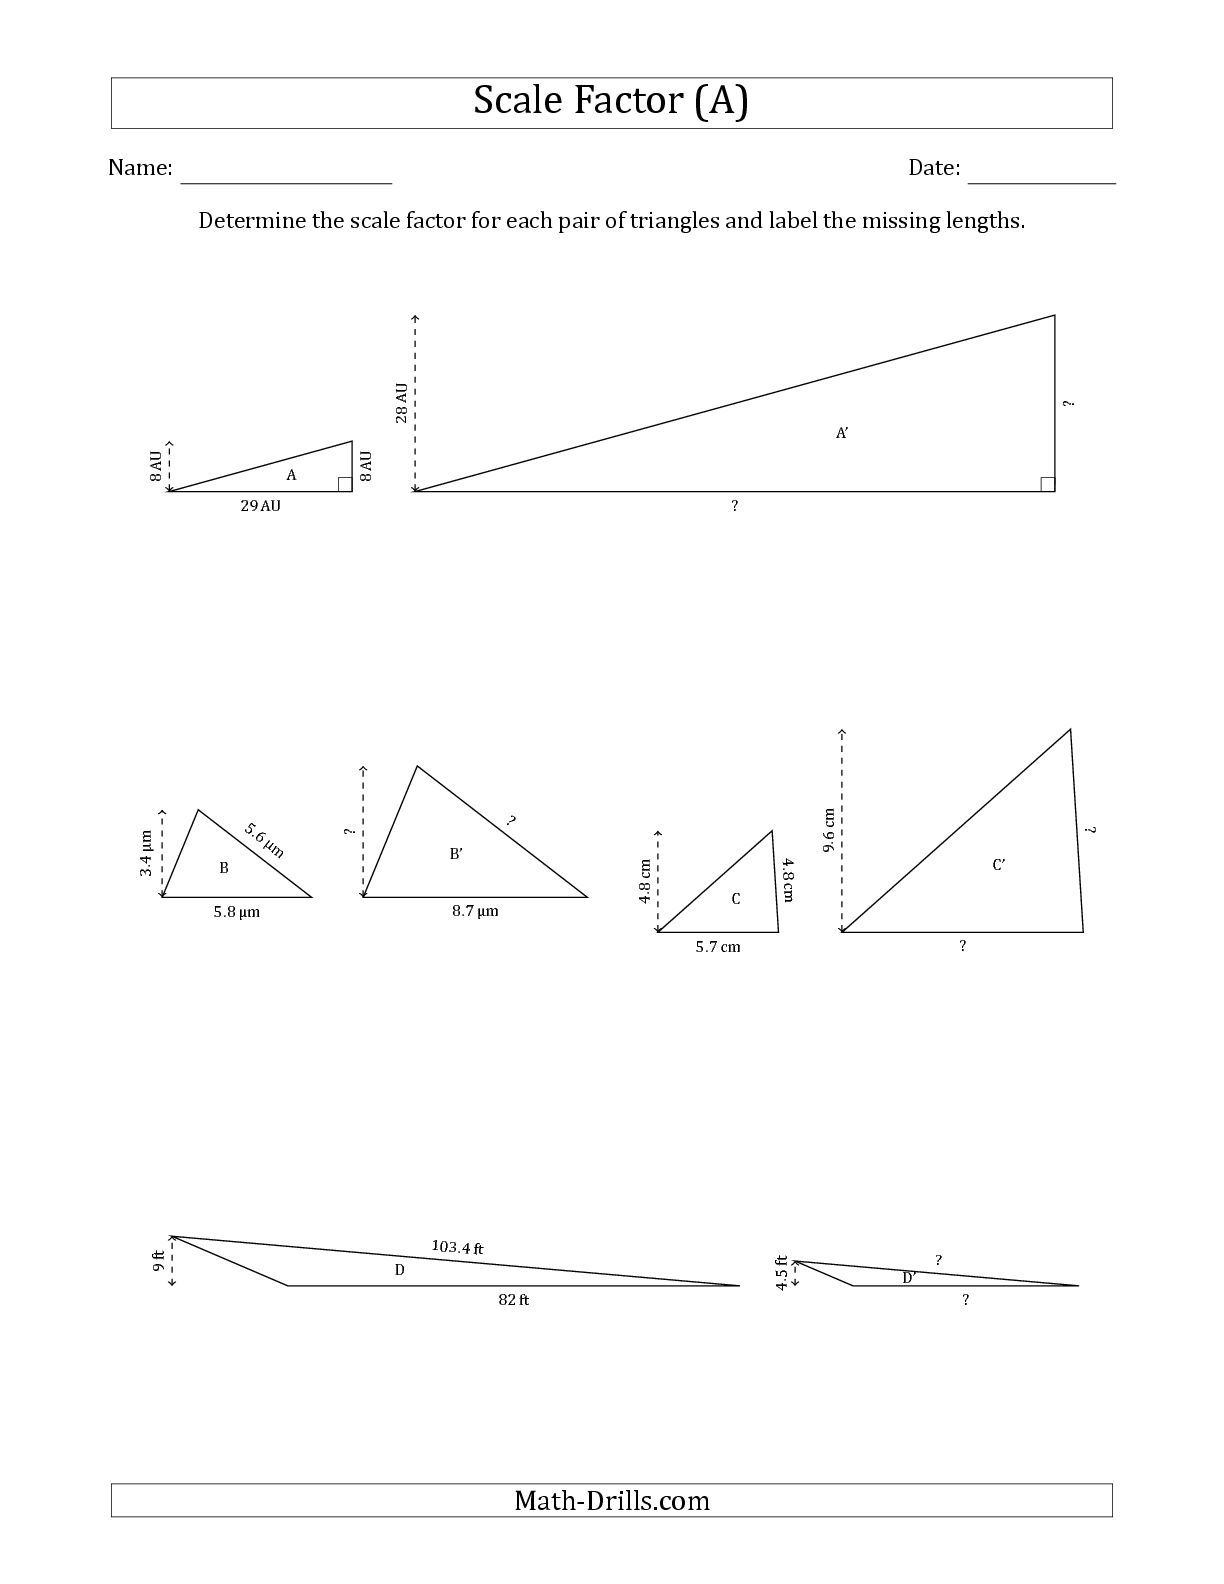 The Determine The Scale Factor Between Two Triangles And